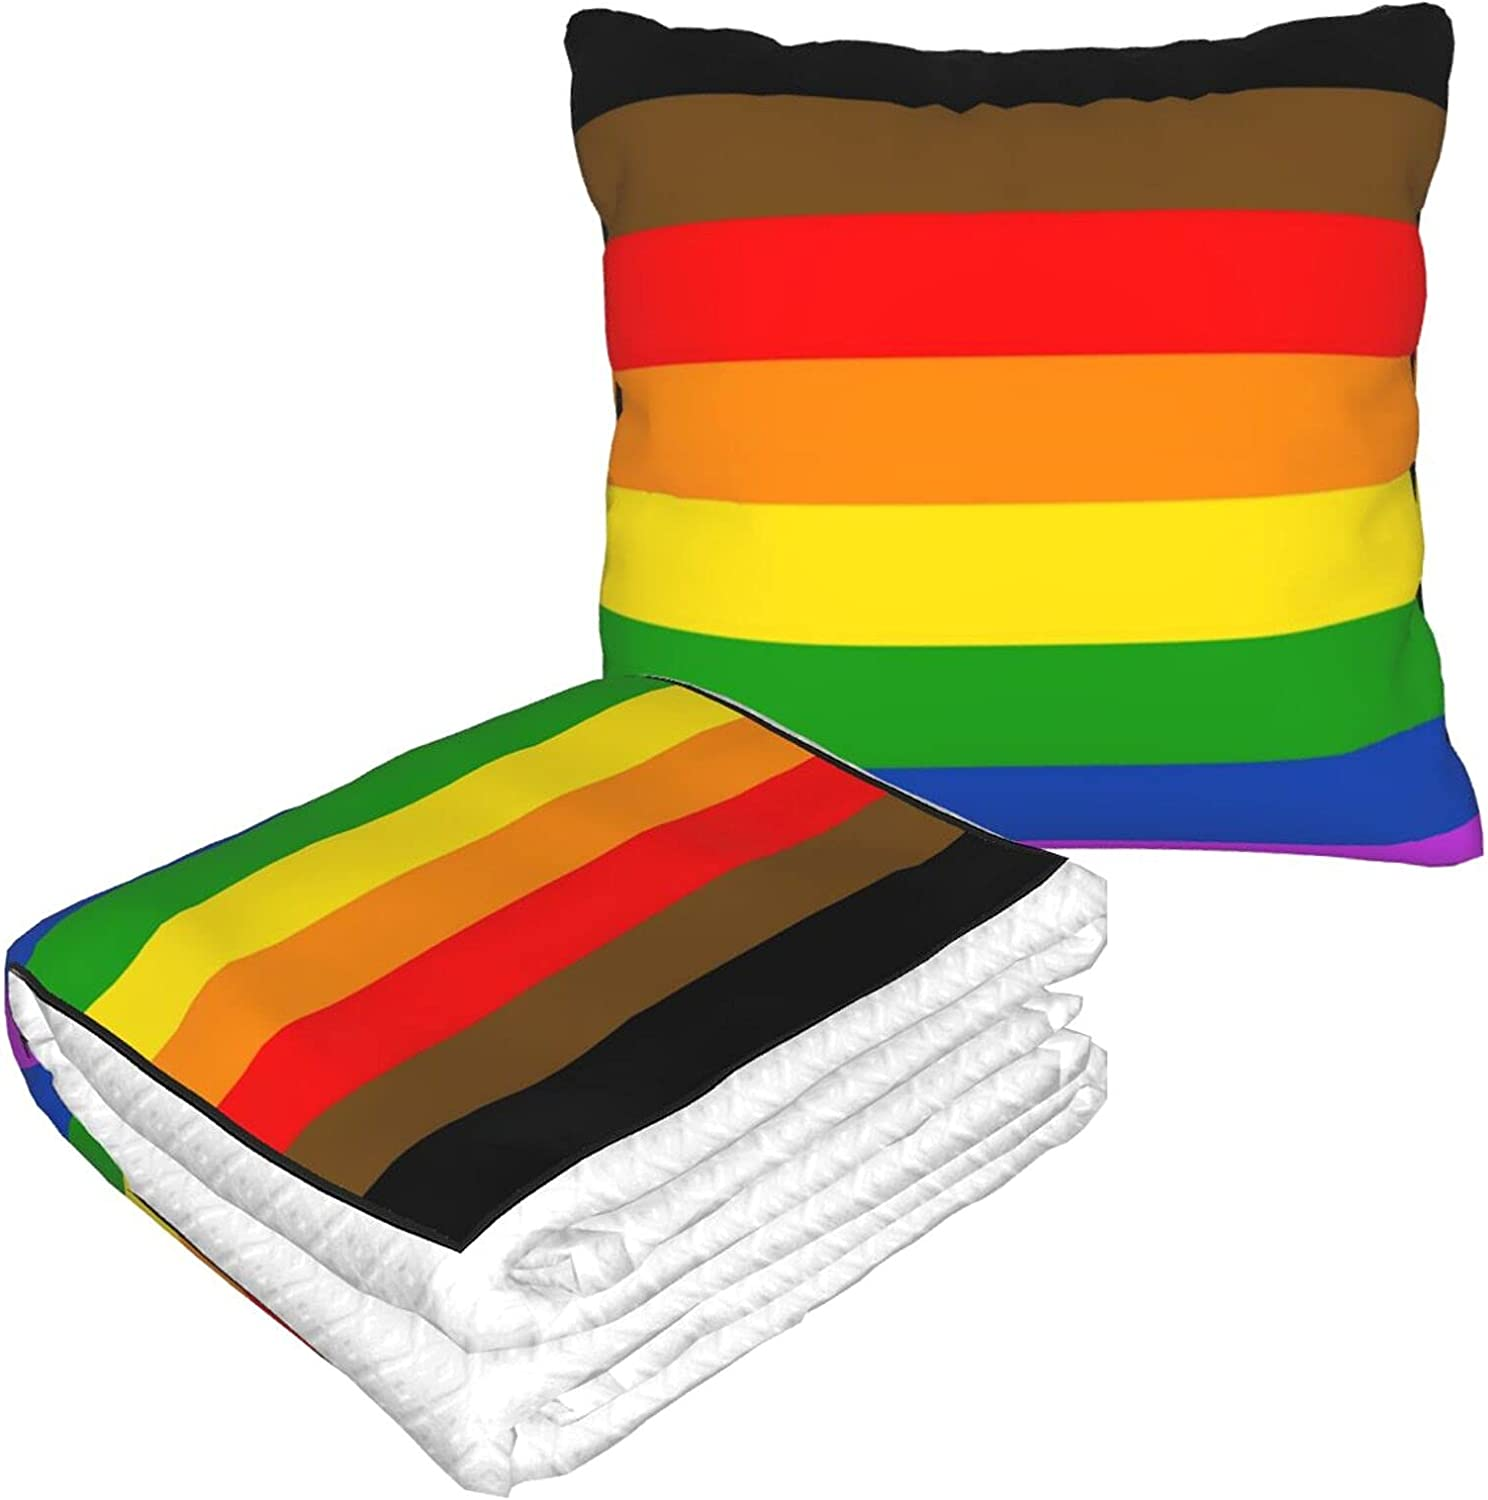 Foldable Pillow Blanket Philly Pride Flag Special Campaign LGBTQ Camp Ranking TOP6 for Travel